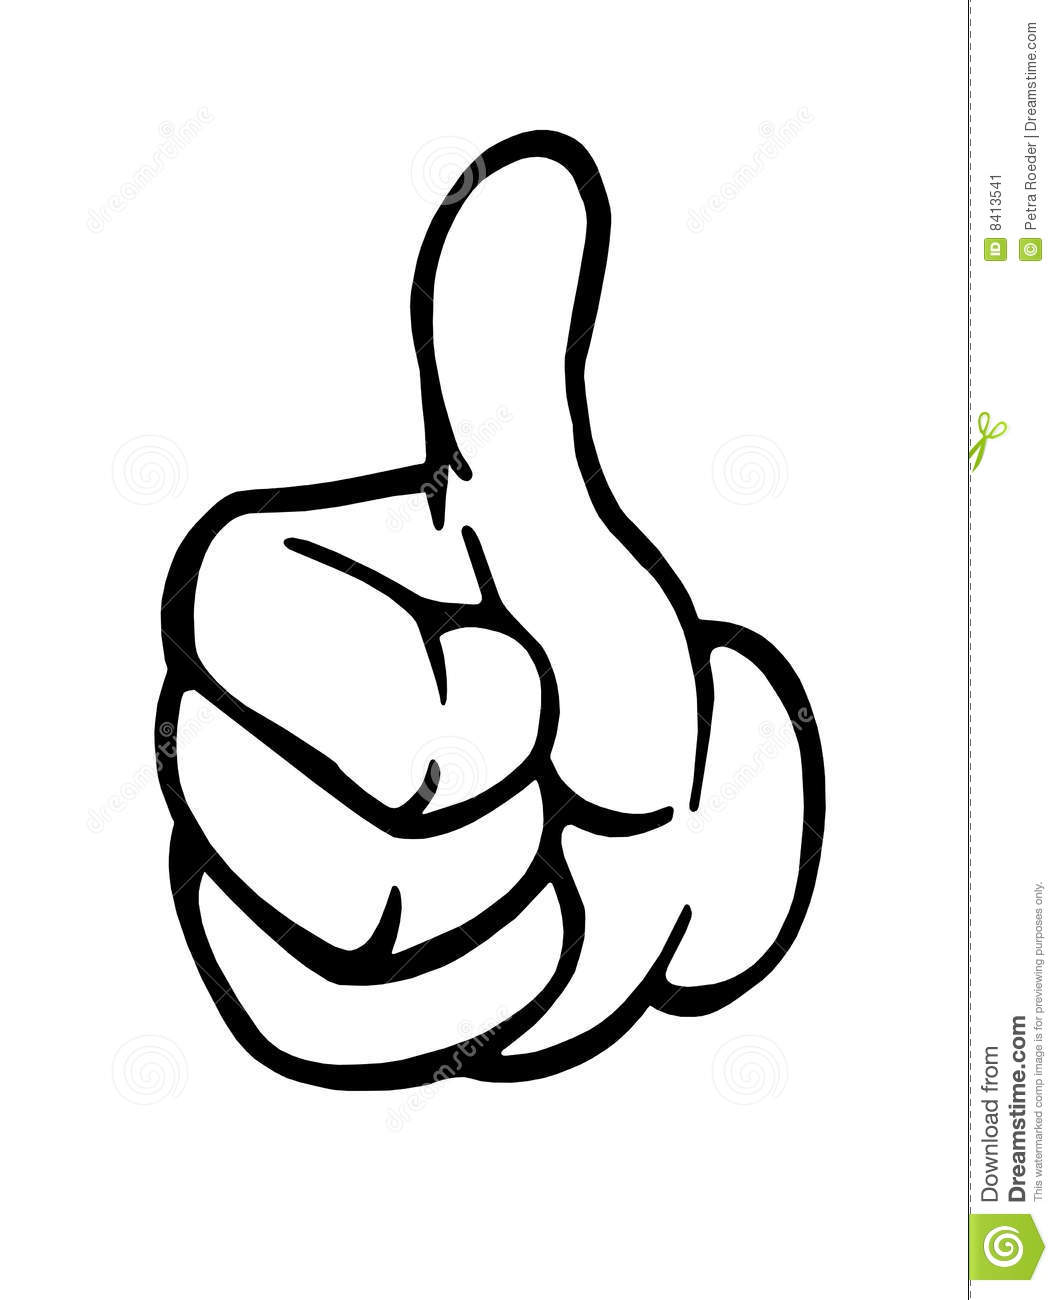 1058x1300 2 Thumbs Up Clipart